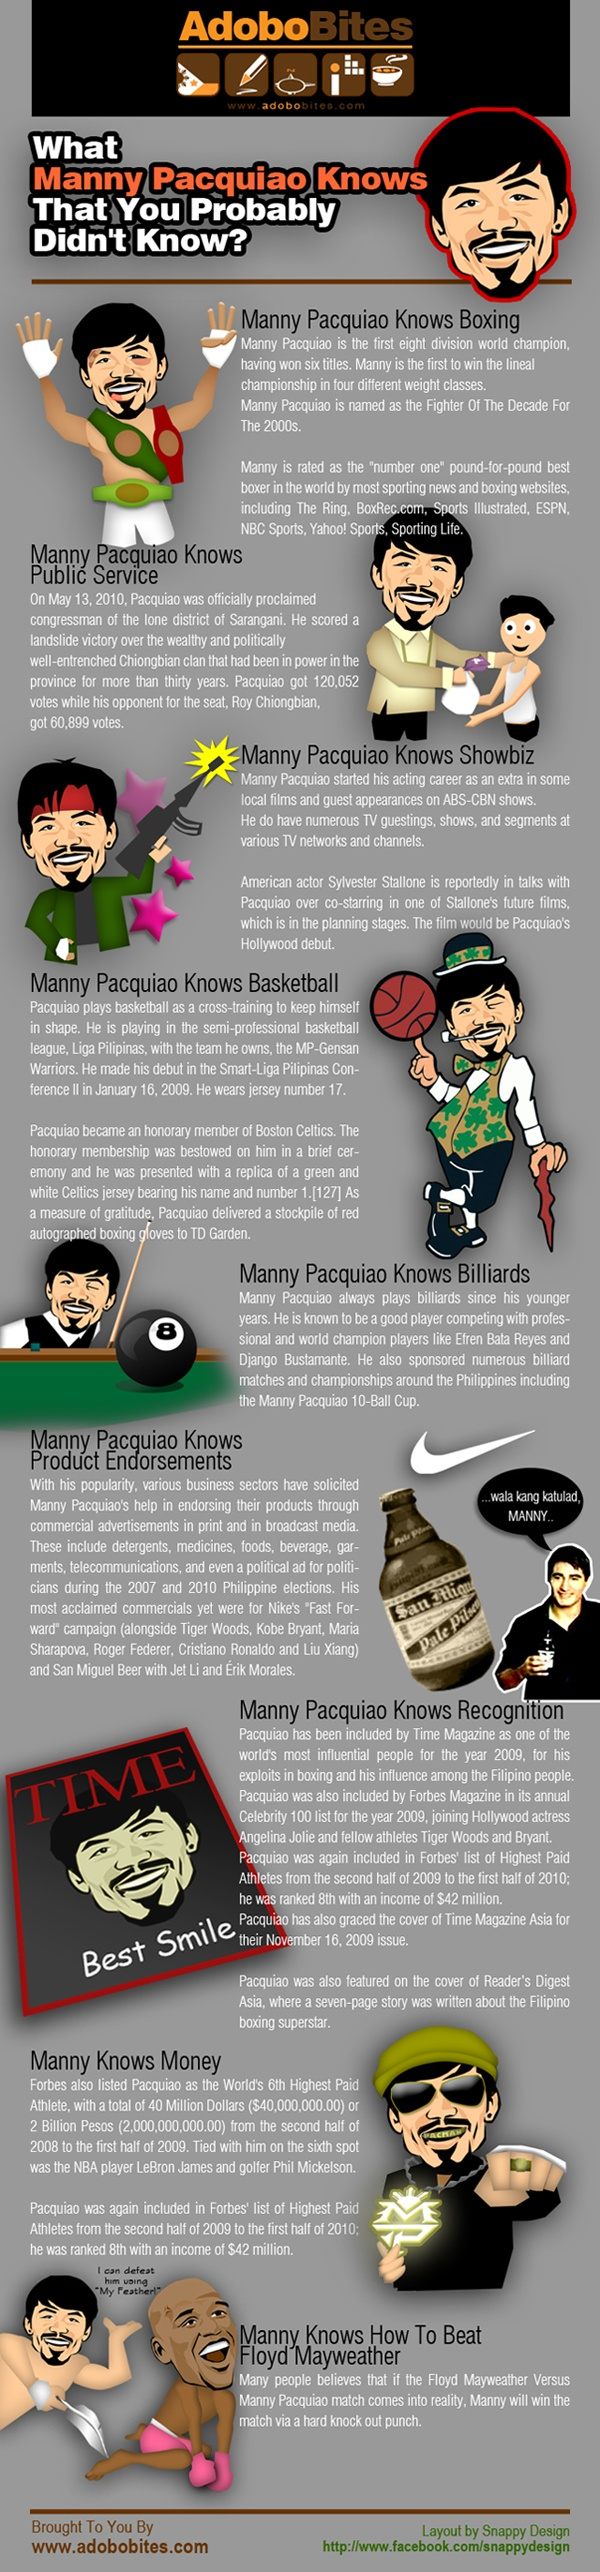 What Manny Pacquiao Knows That You Probably Didn't Know [INFOGRAPHIC]